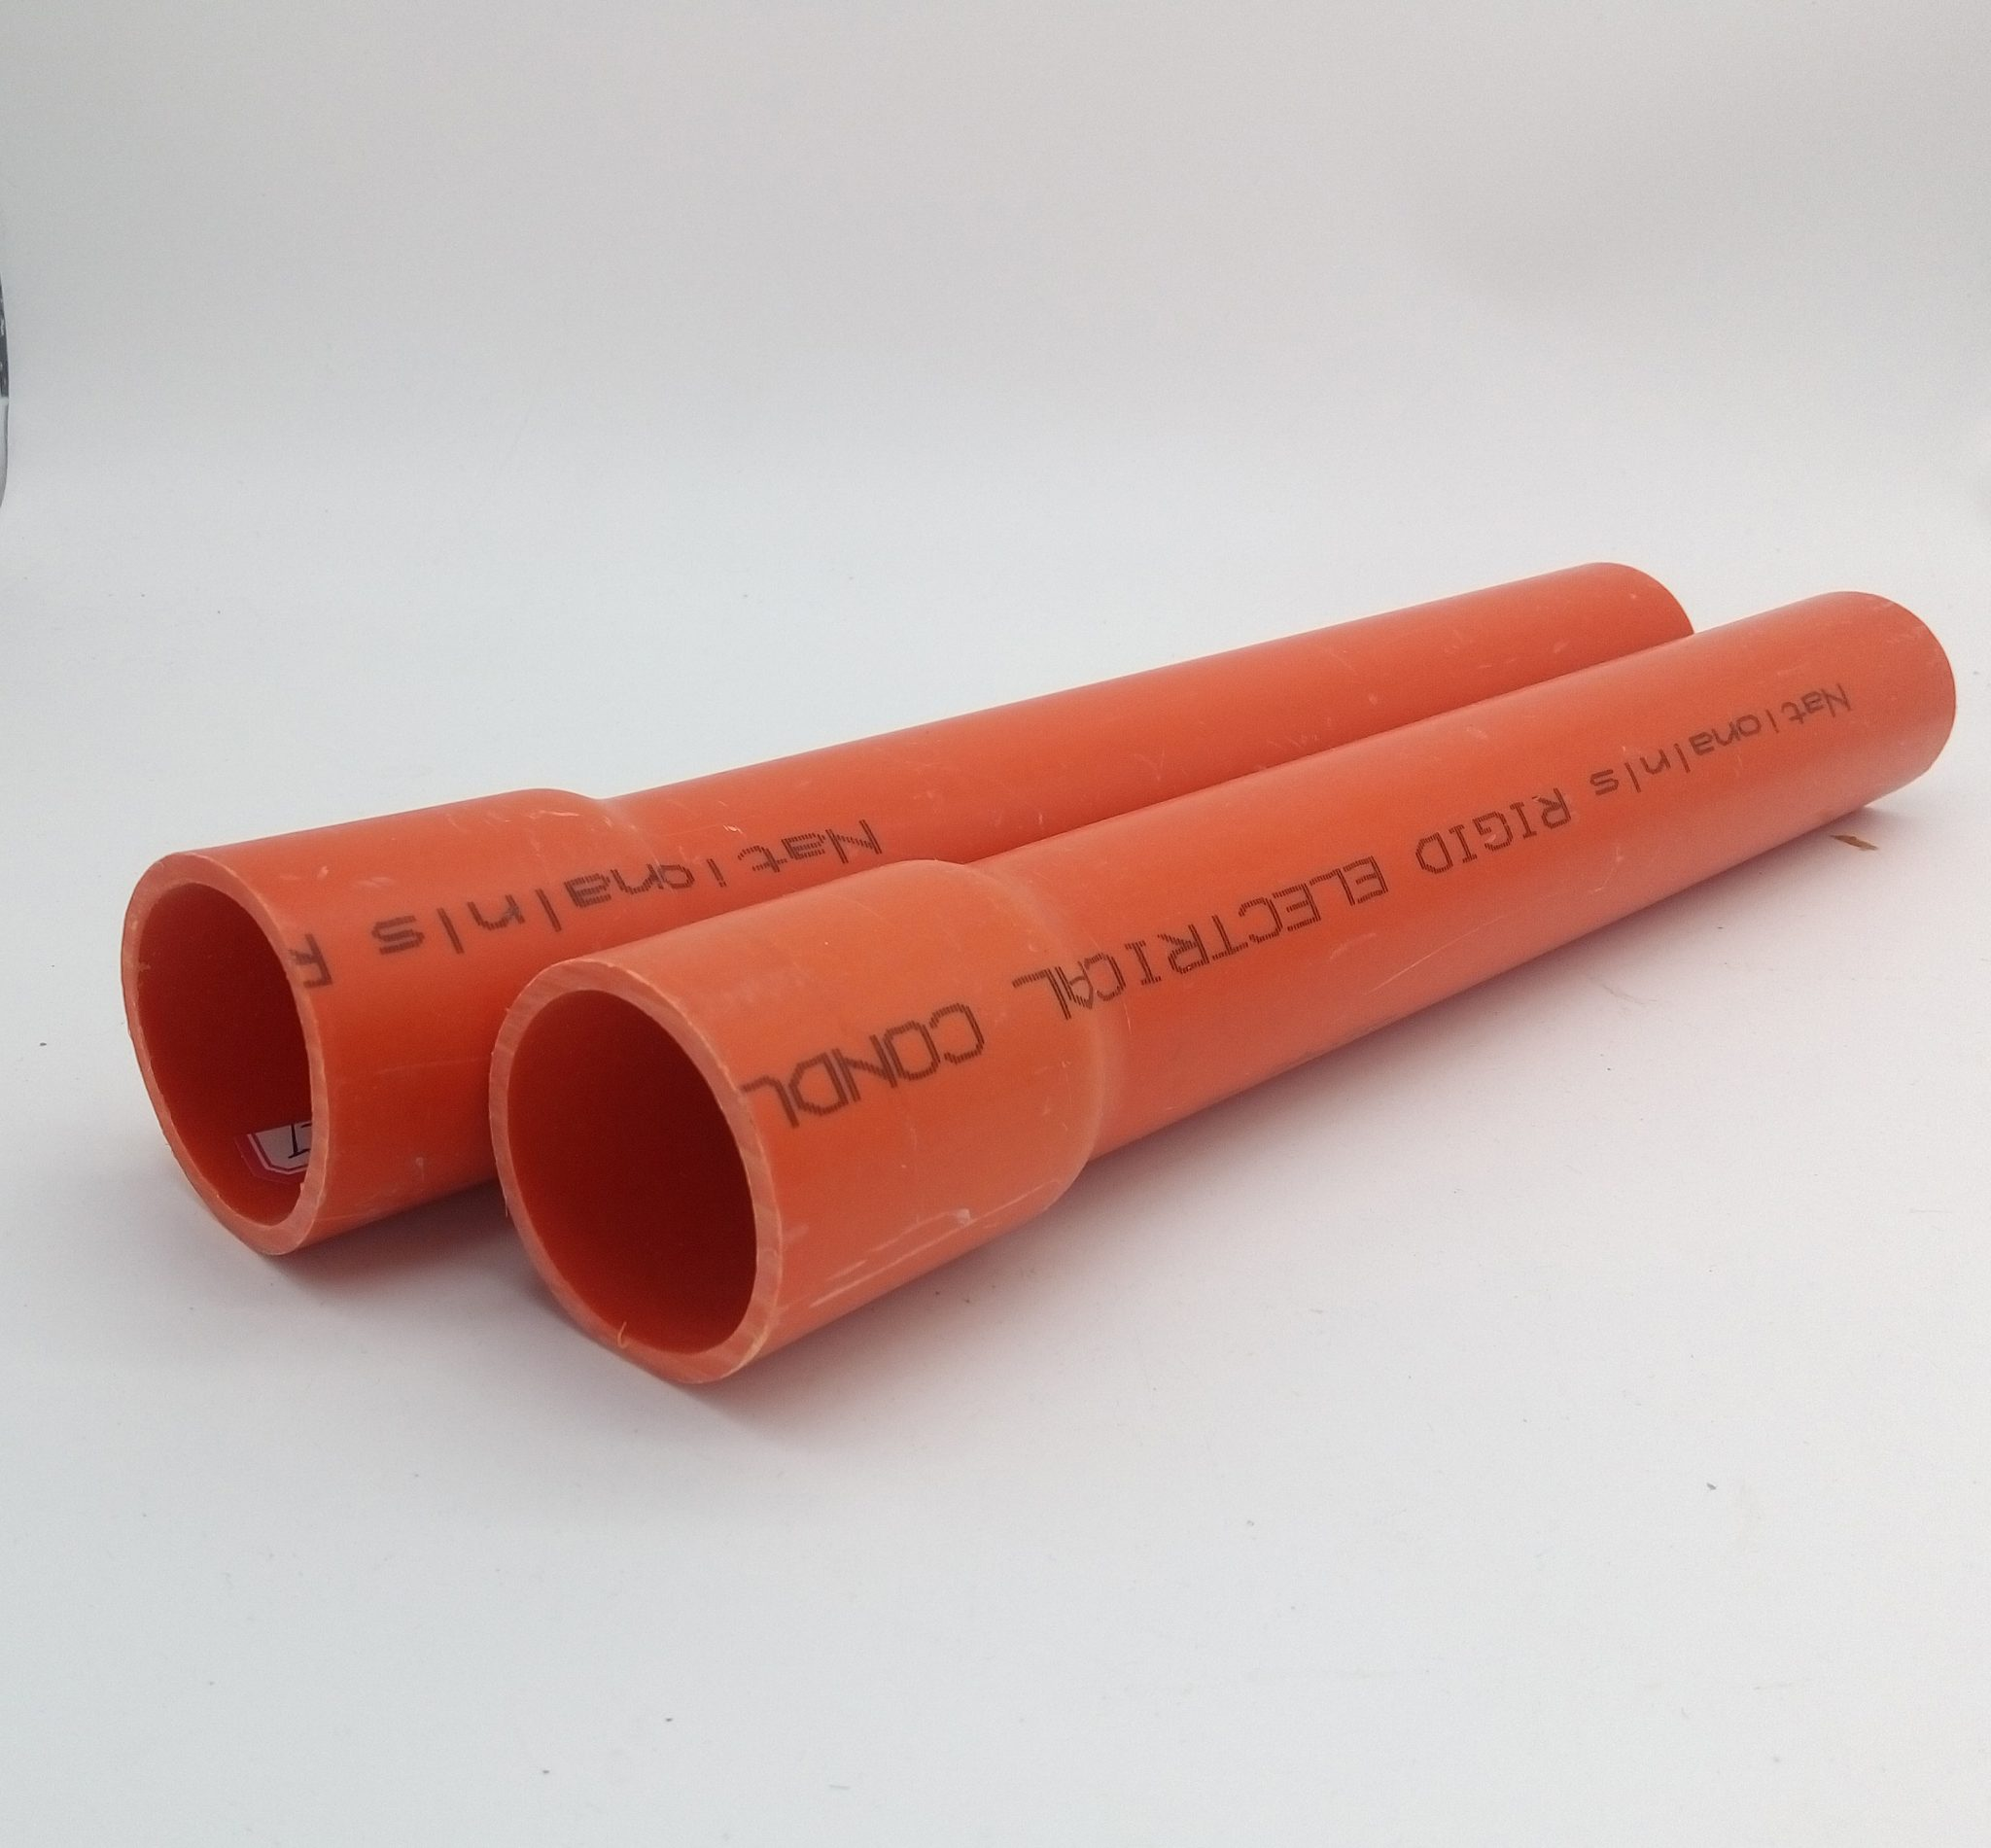 Australia Standard UPVC CONDUIT PIPE ORANGE COLOUR